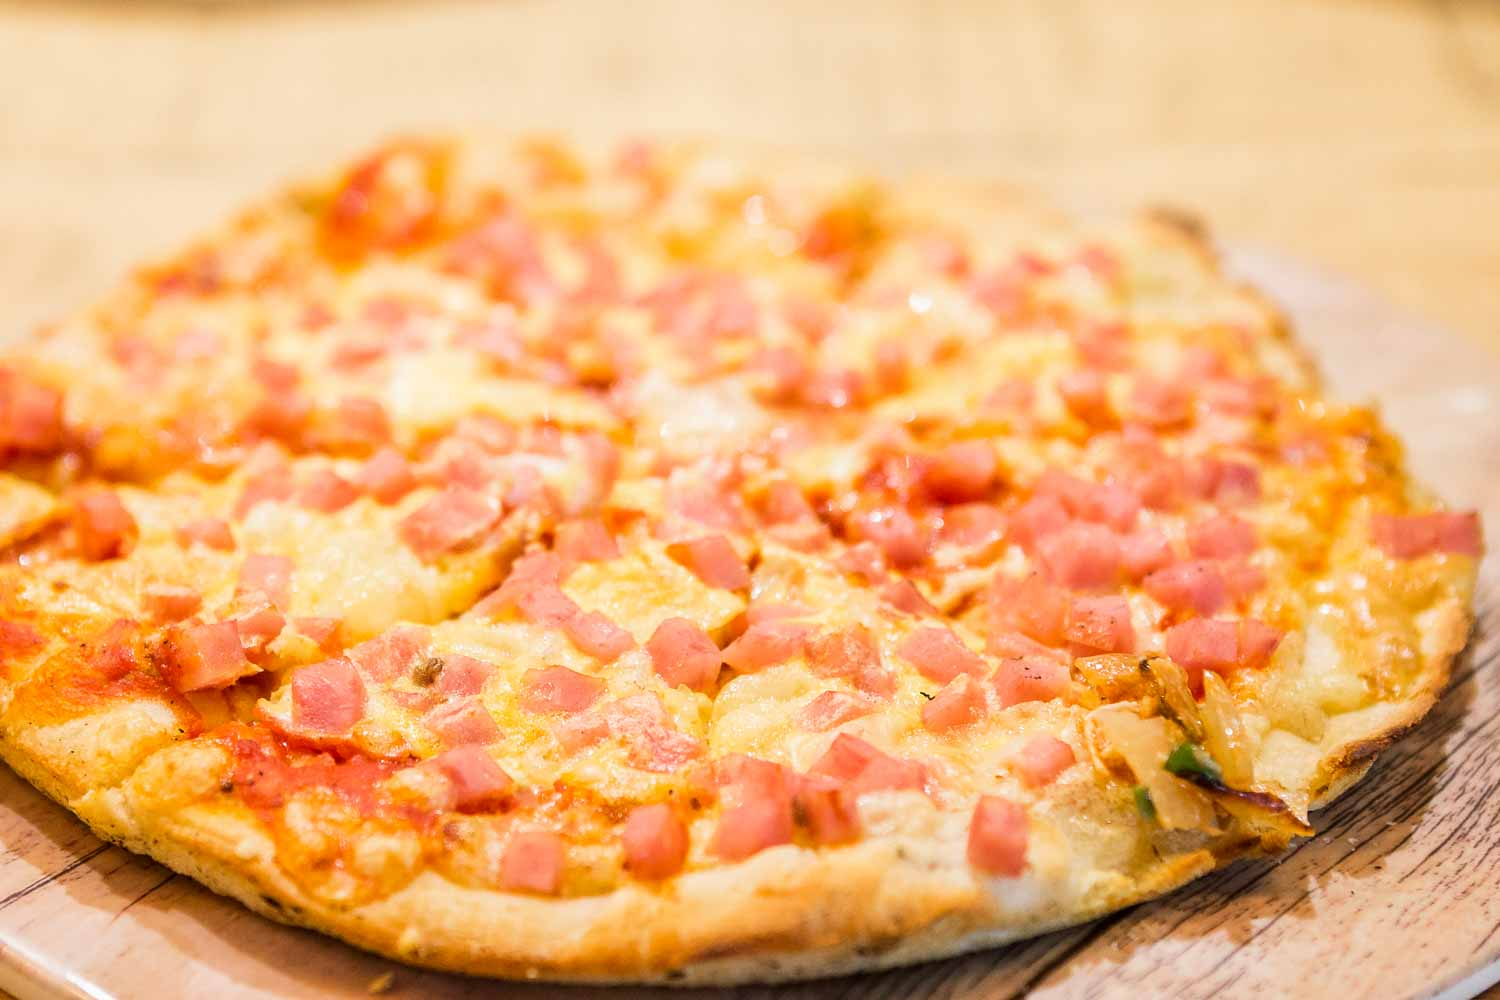 Tomato, cheese and ham